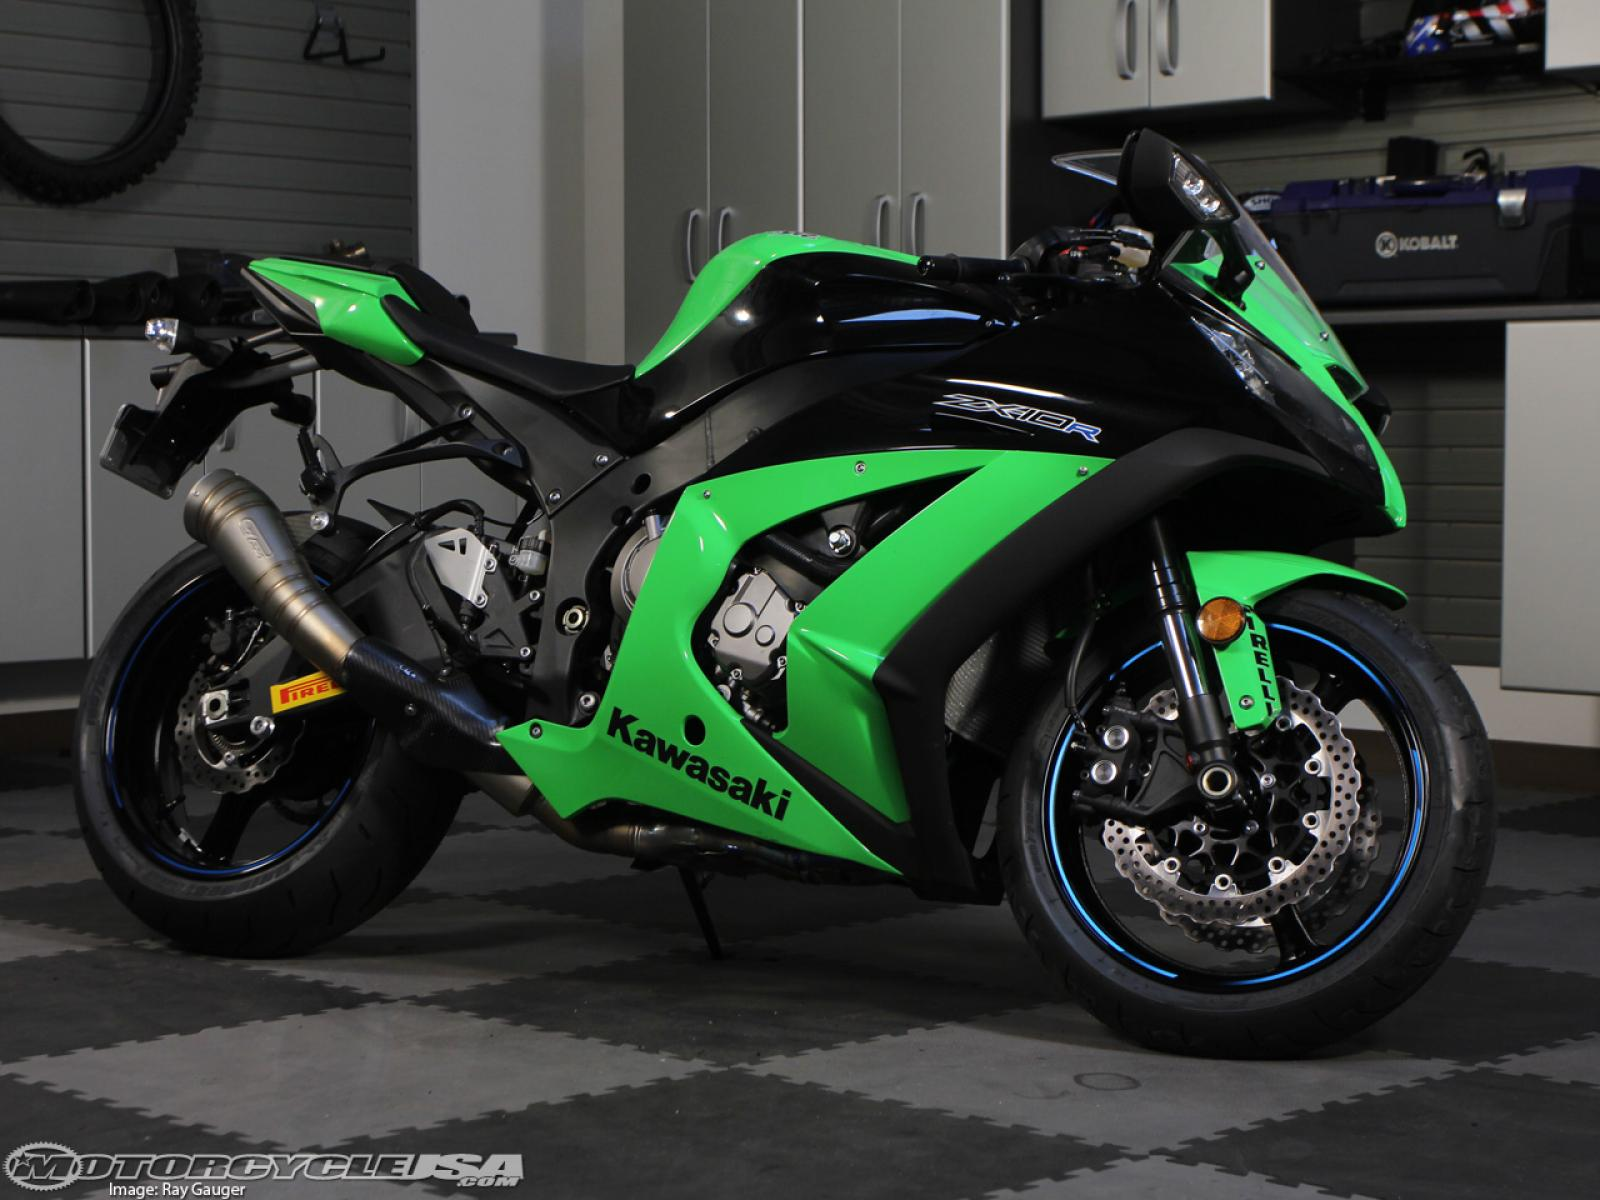 2012 kawasaki ninja zx 10r moto zombdrive com. Black Bedroom Furniture Sets. Home Design Ideas